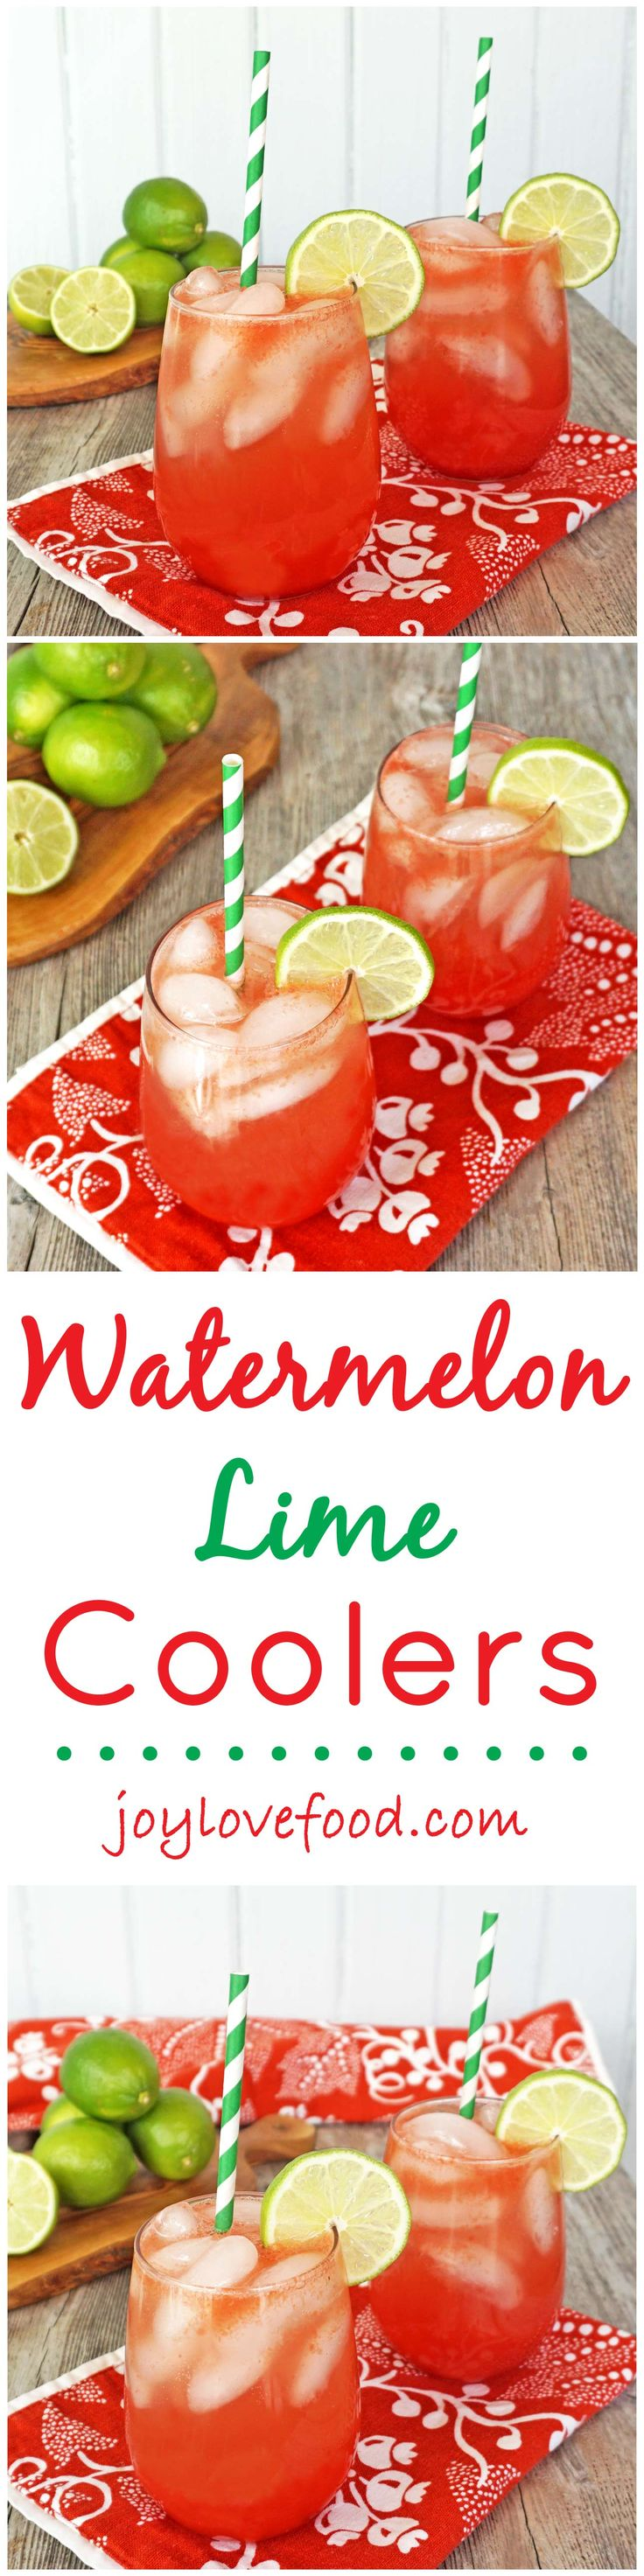 Watermelon Lime Coolers - these light and refreshing coolers are perfect for anytime you'd like some bright and cheerful refreshment.